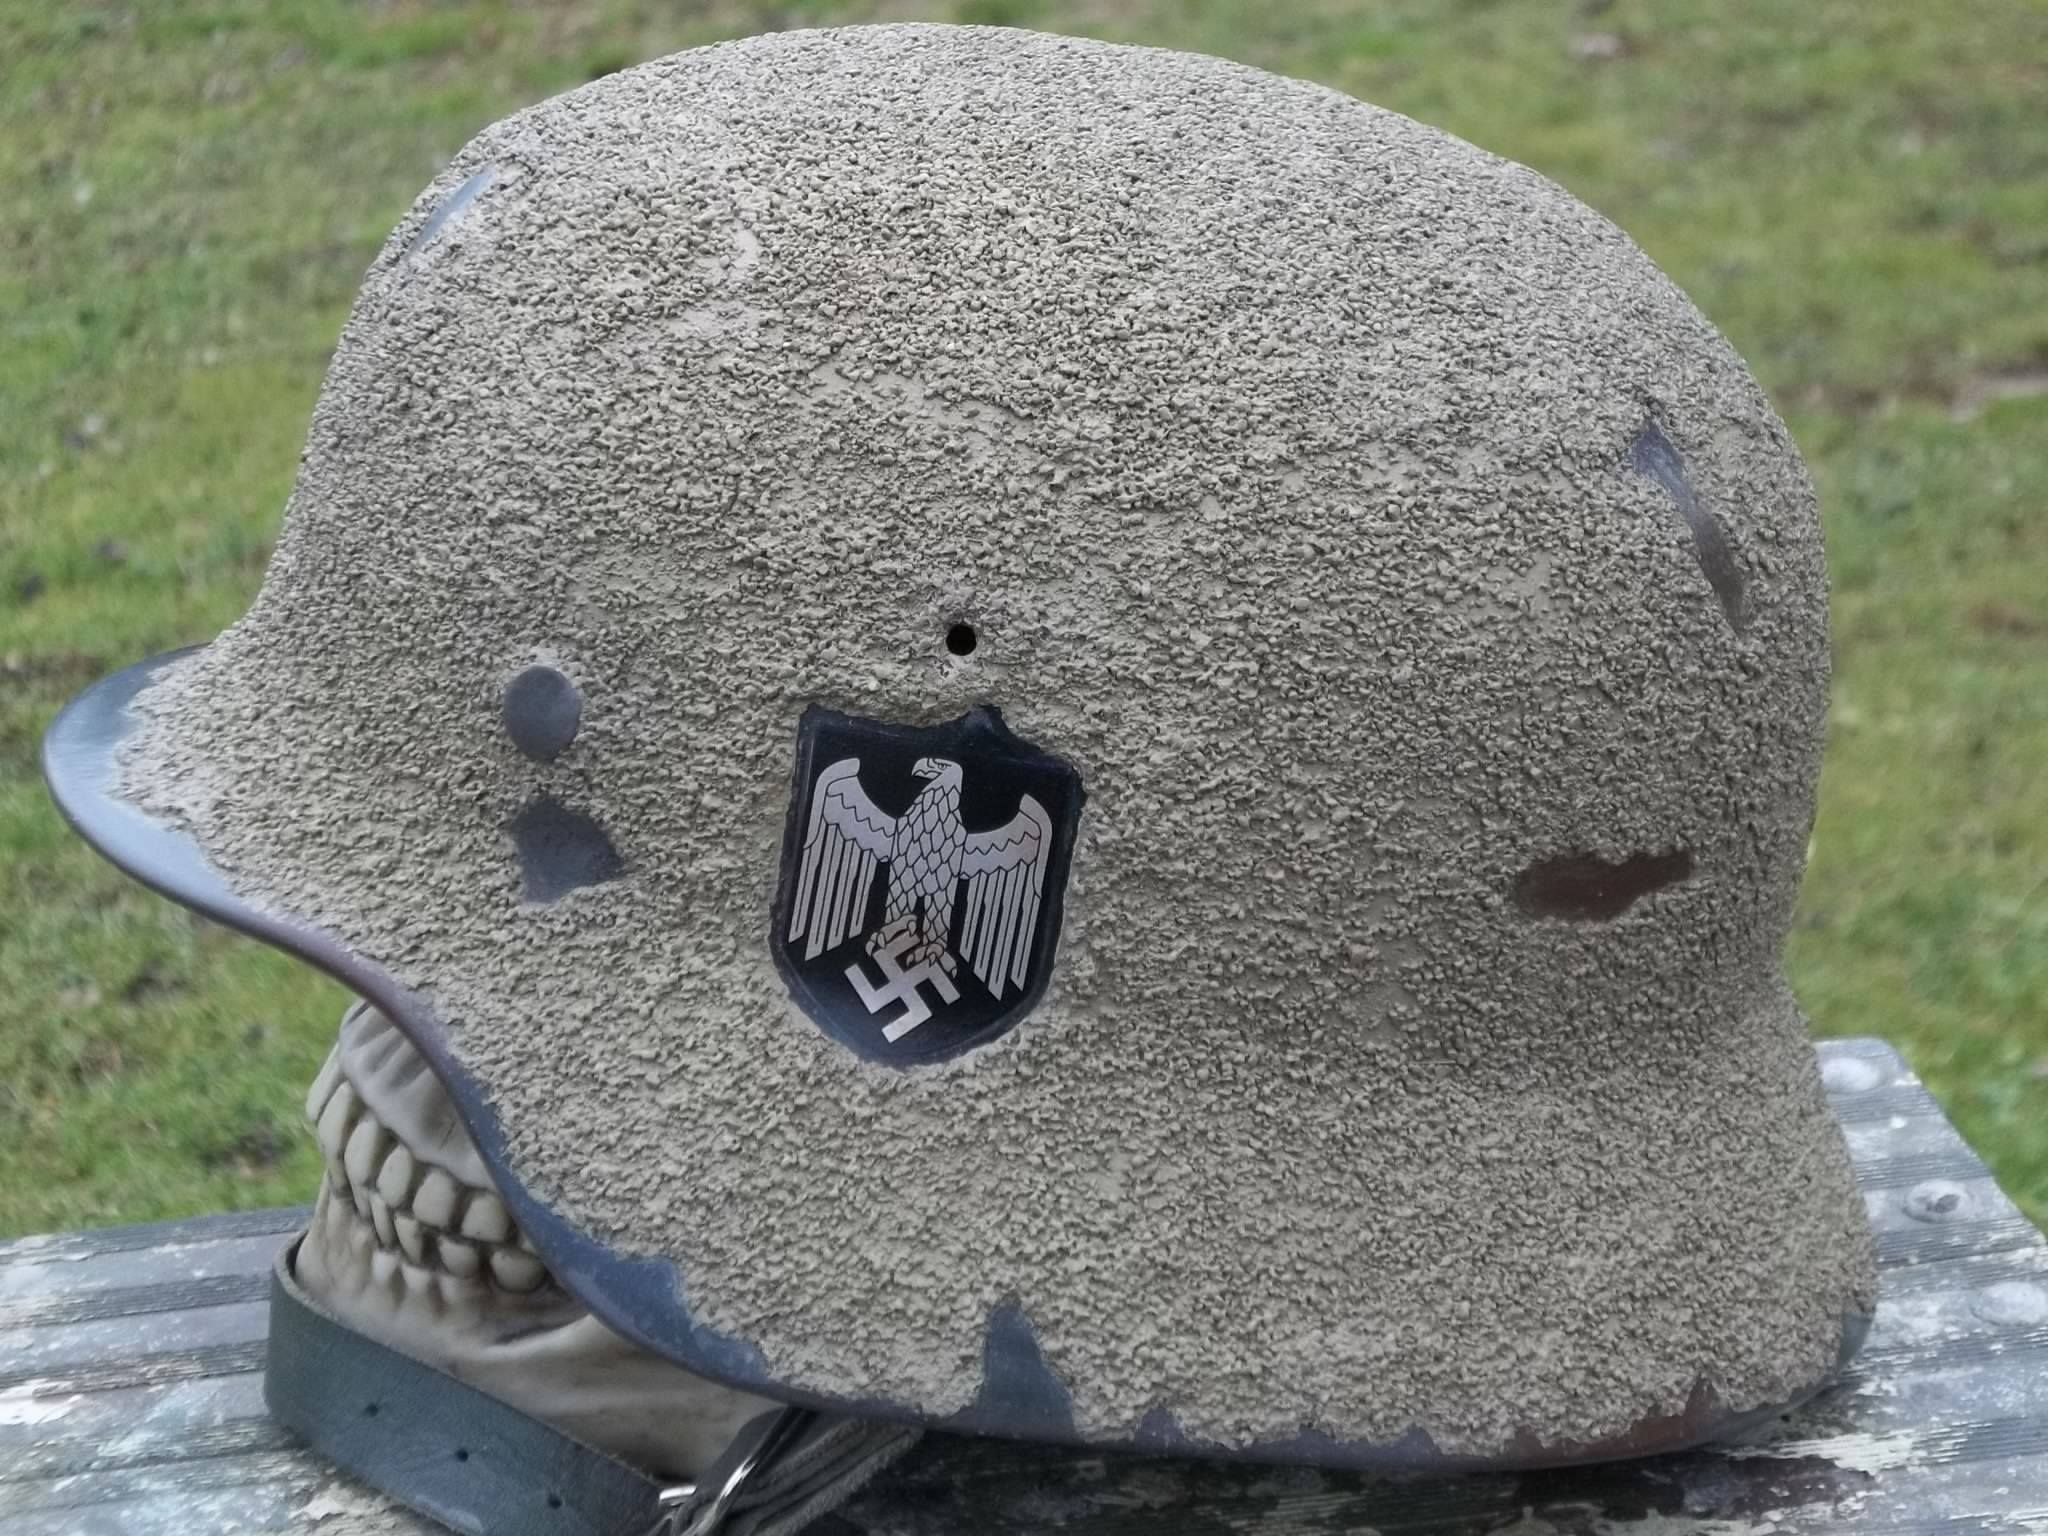 German zimmerit helmet